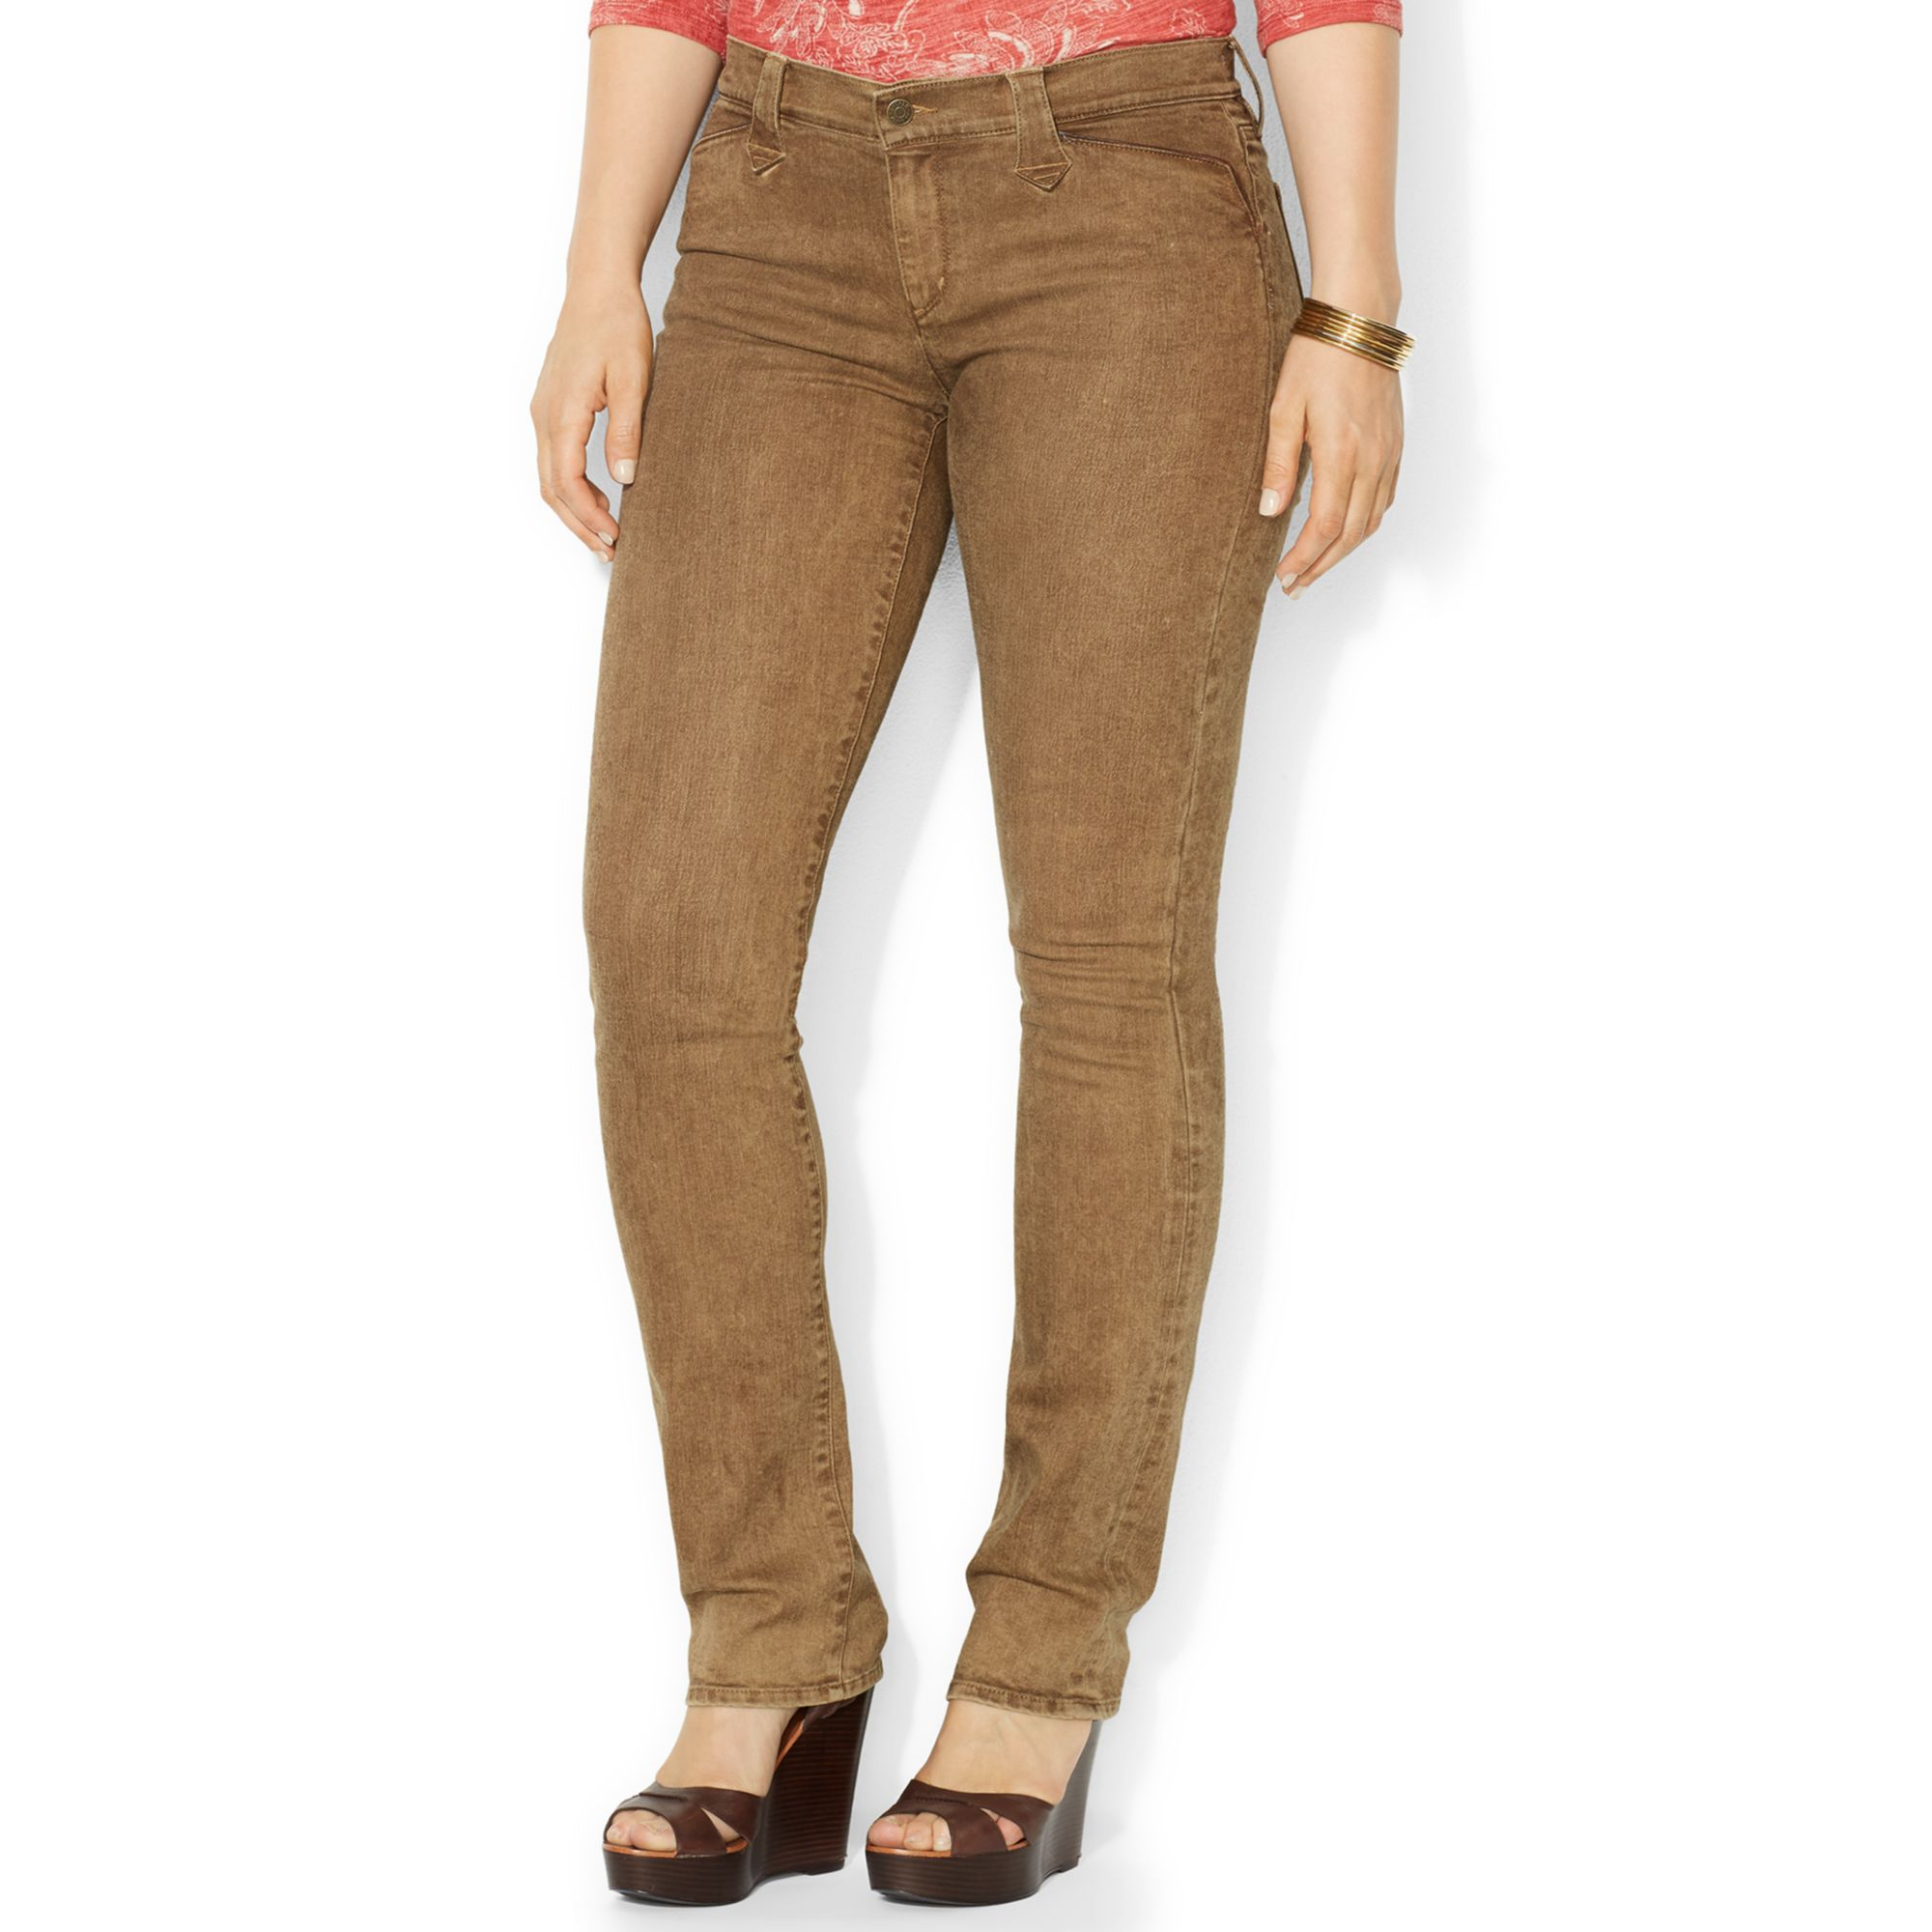 Plus Size Brown Jeans | Bbg Clothing